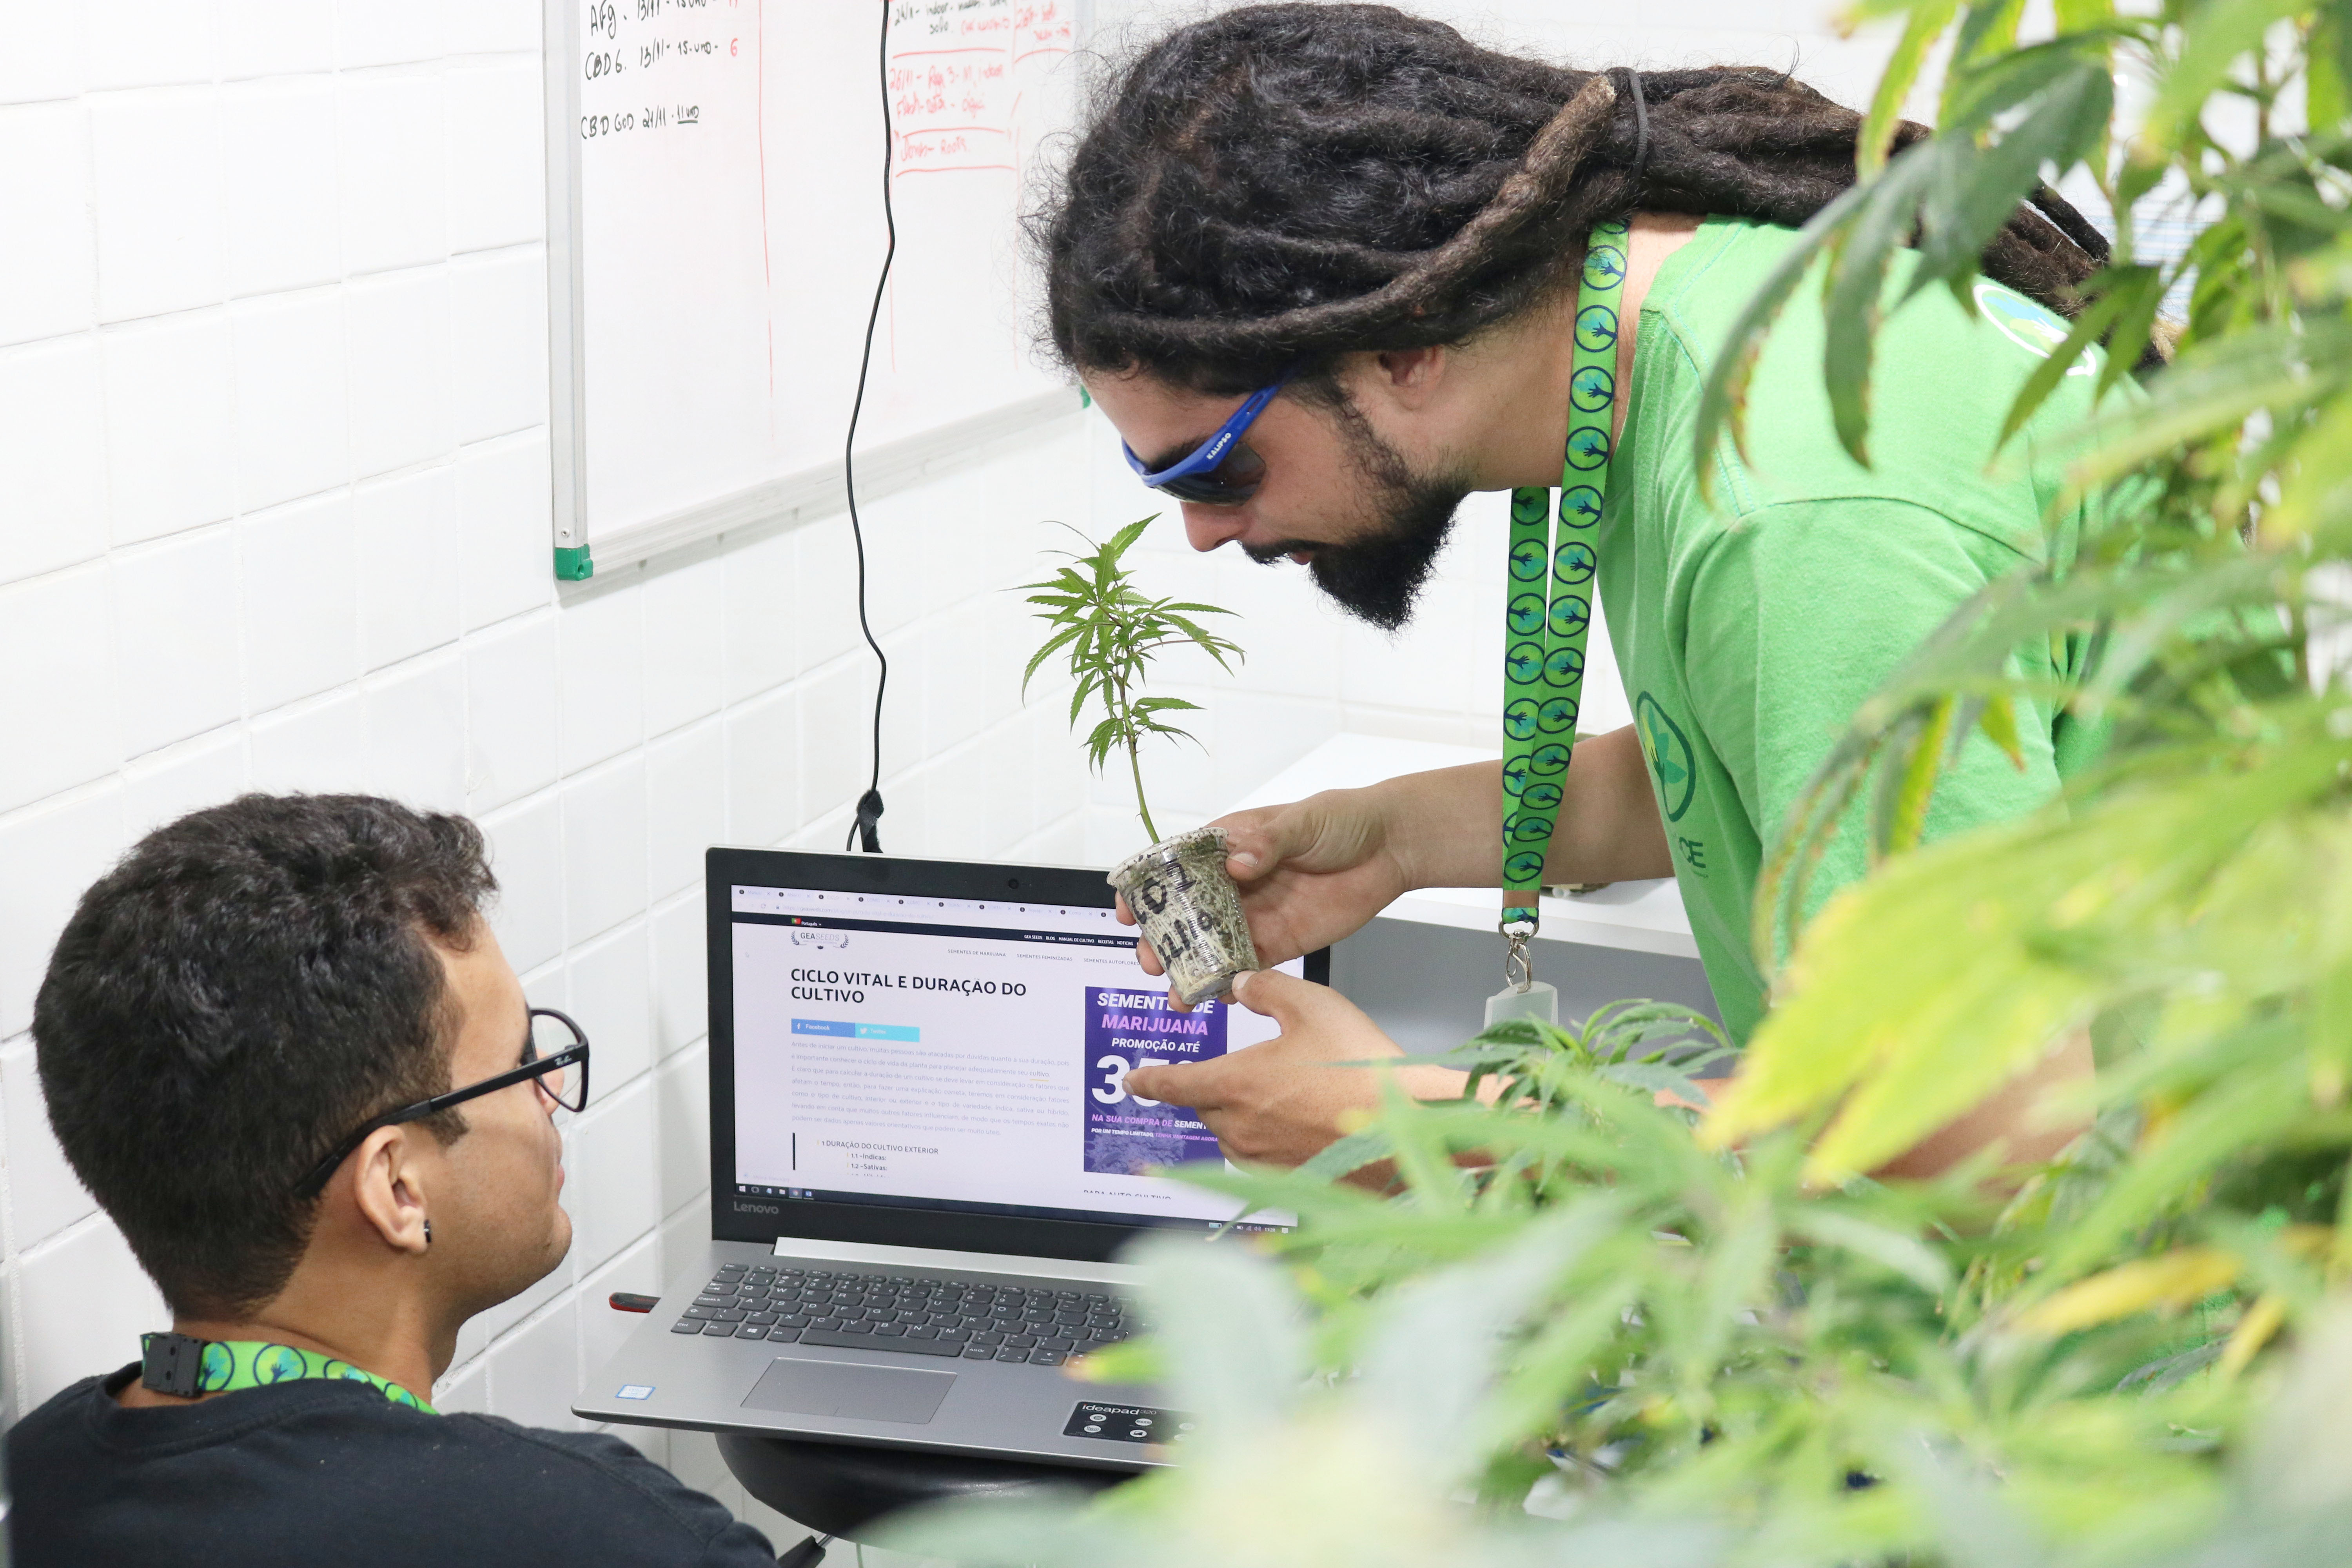 Medical cannabis plant seedling being looked at by scientists